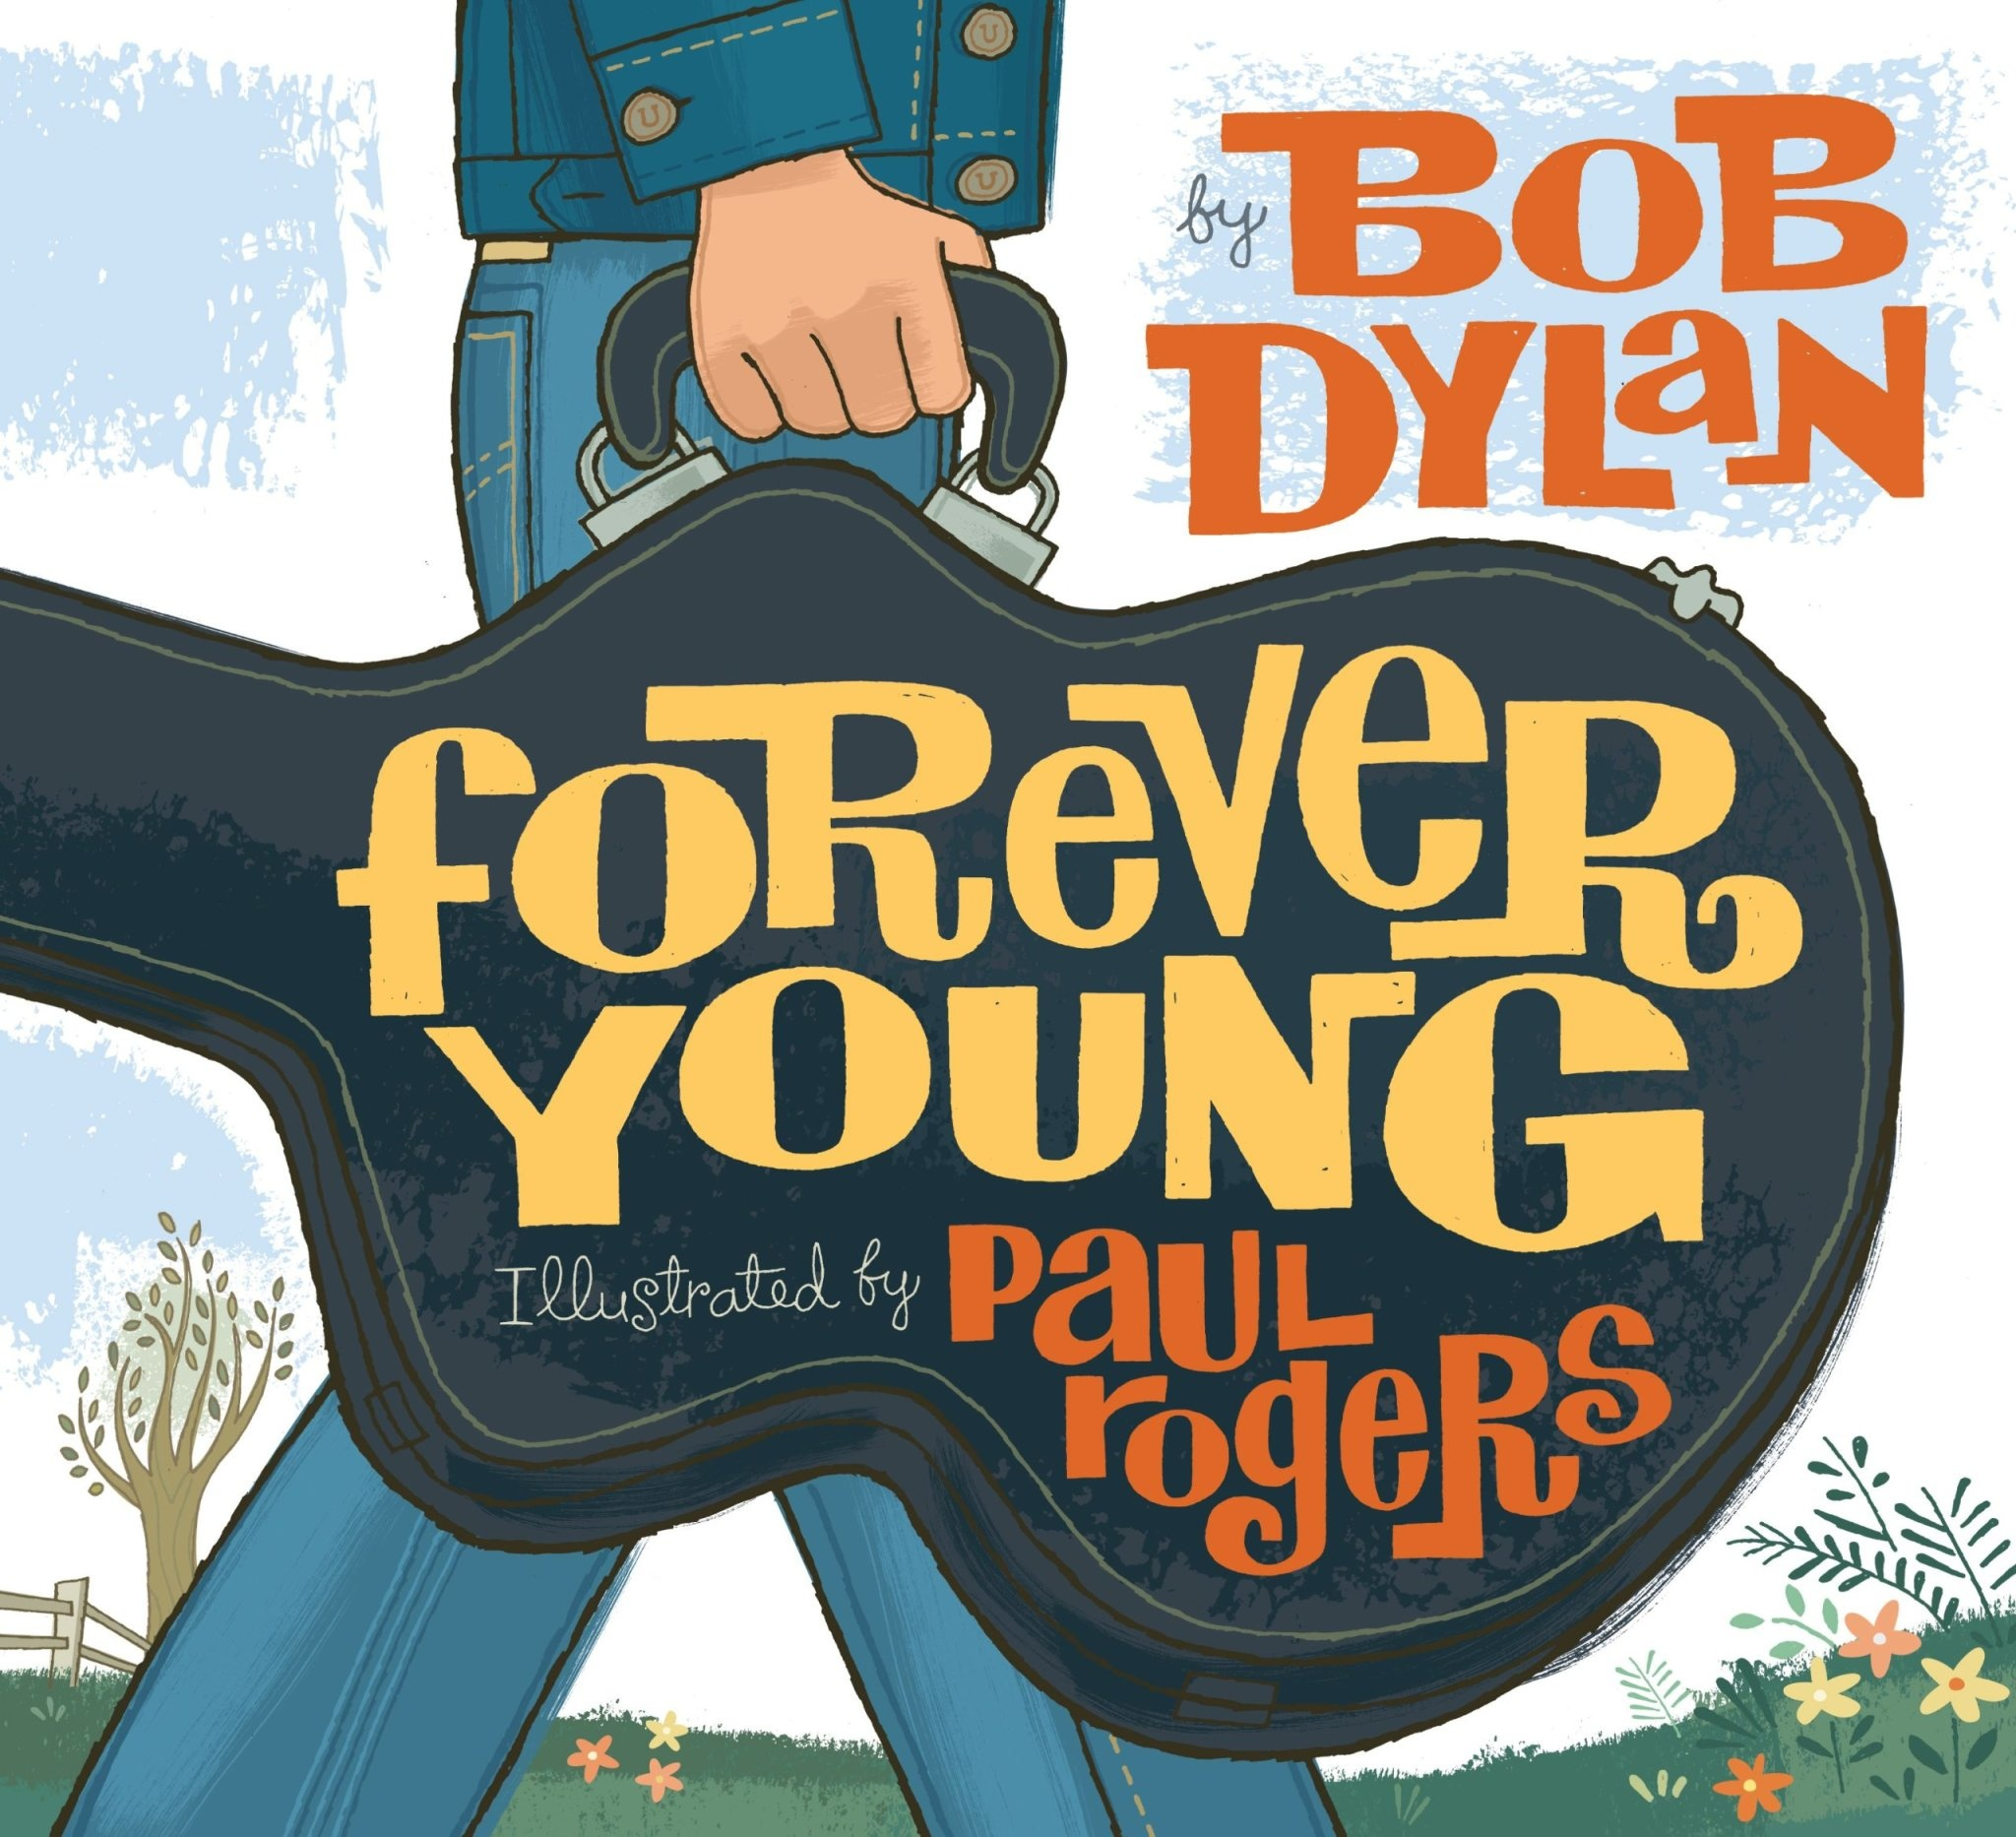 Kids Forever Young - Bob Dylan